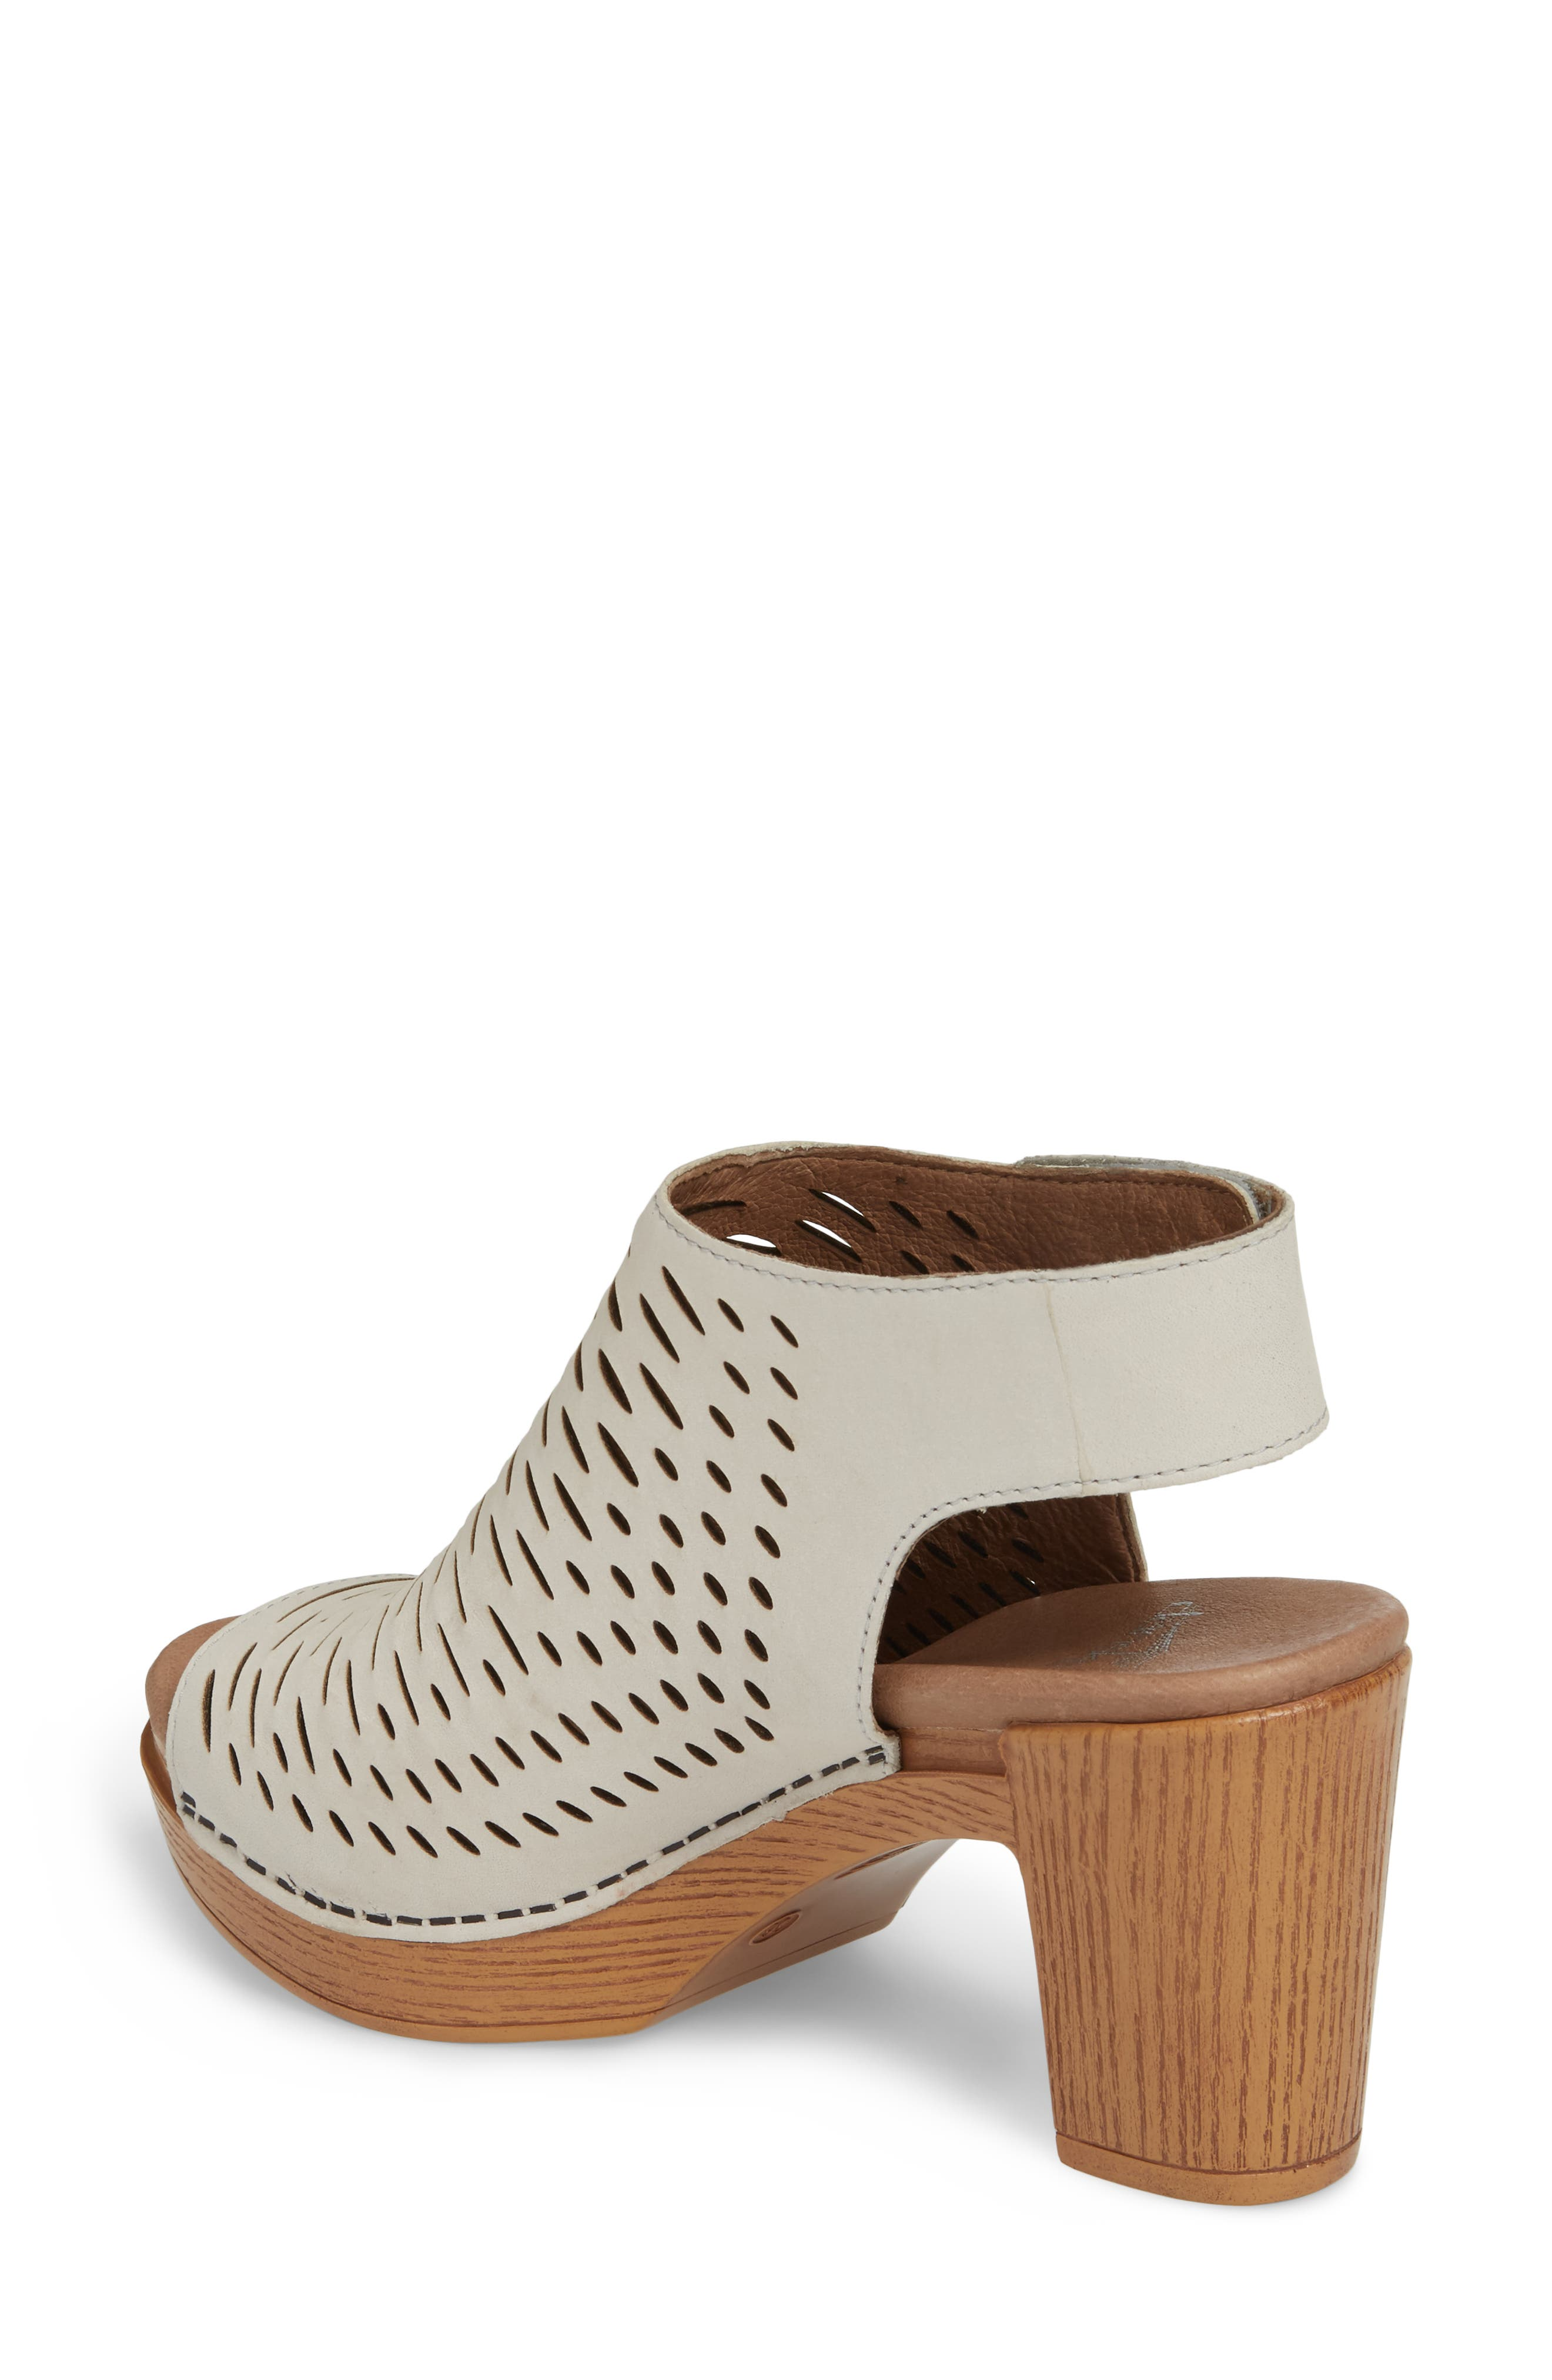 Danae Block Heel Sandal,                             Alternate thumbnail 2, color,                             Oyster Milled Nubuck Leather